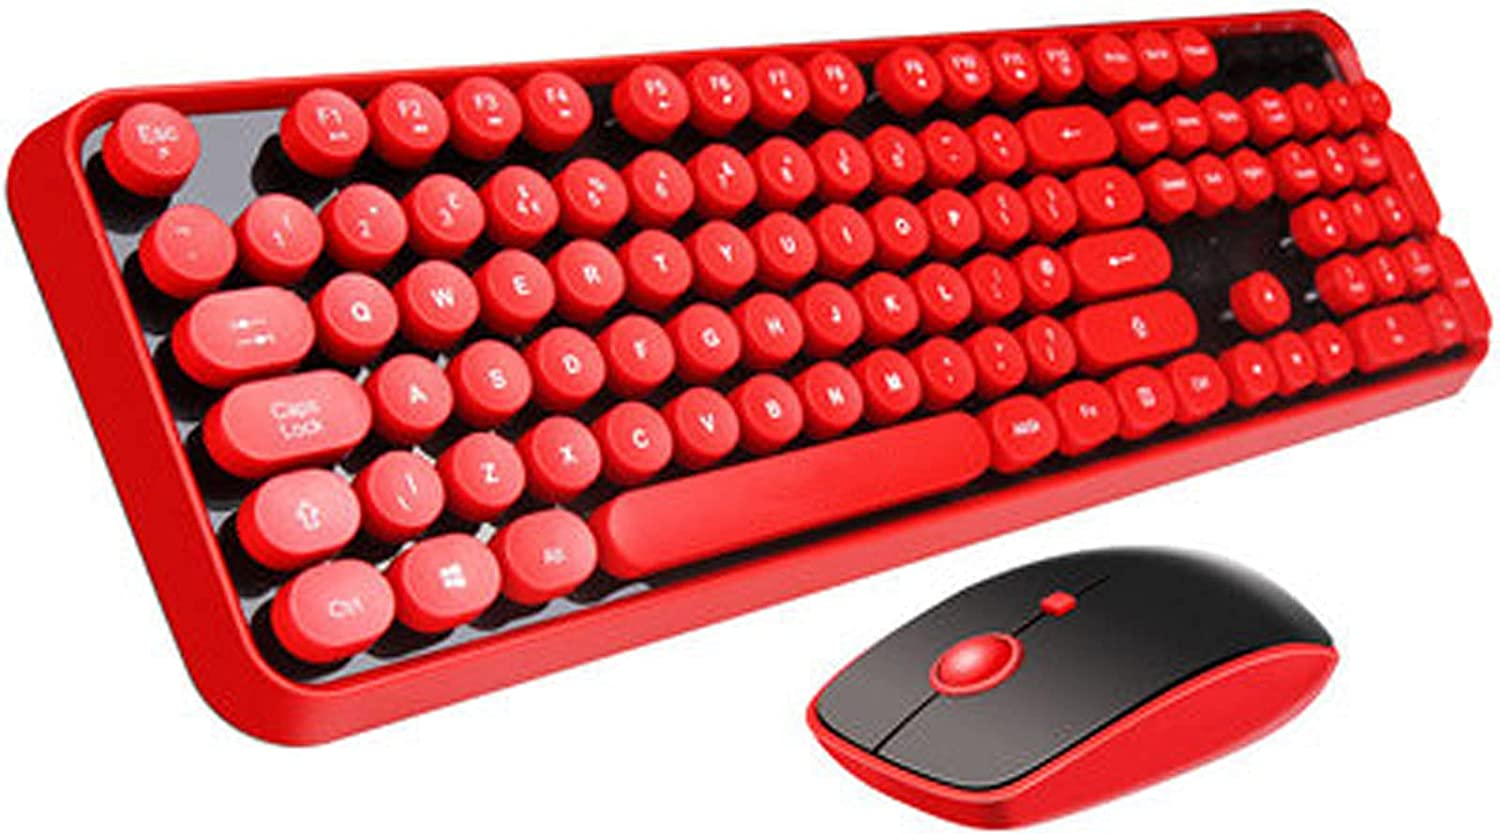 Wireless Keyboard and Mouse Combo Full-Size Dot Keycap Keyboard and Mouse Set Office Home Computer Accessories red